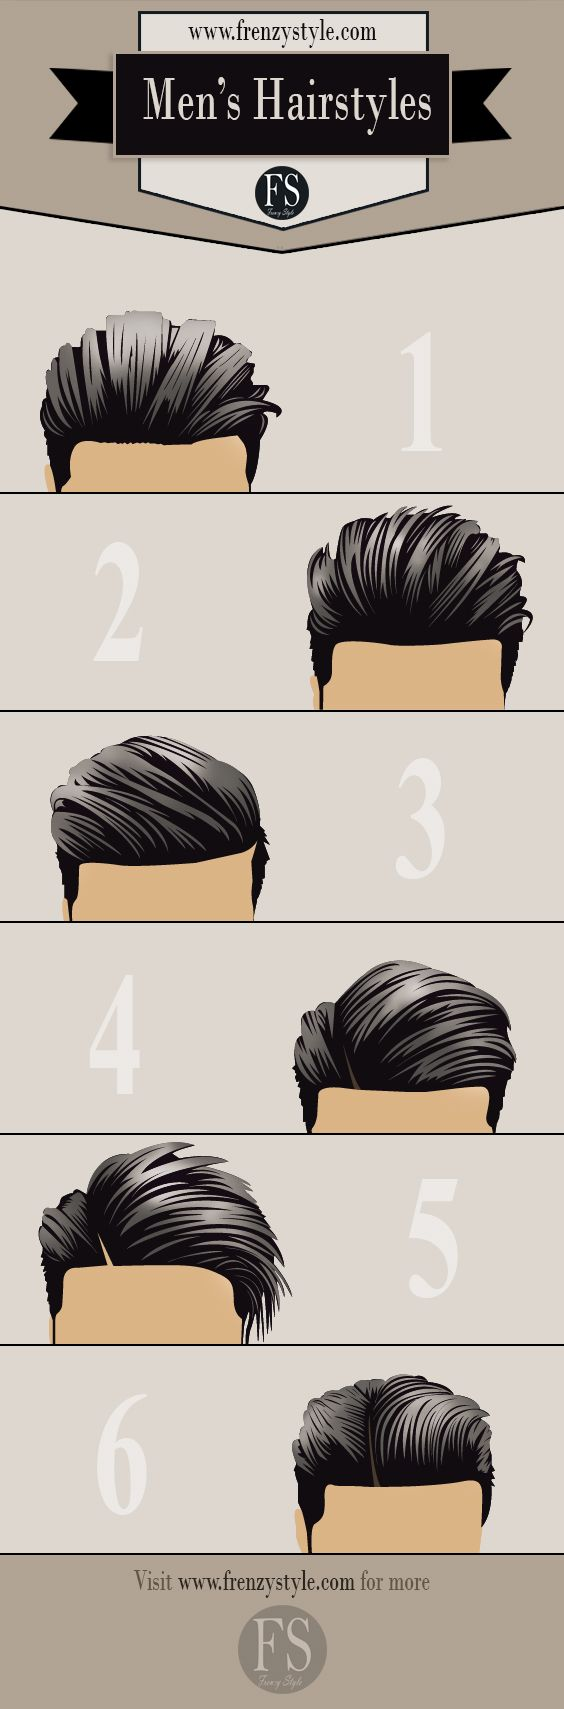 23 Popular Men's Hairstyles and Haircuts from pinterest